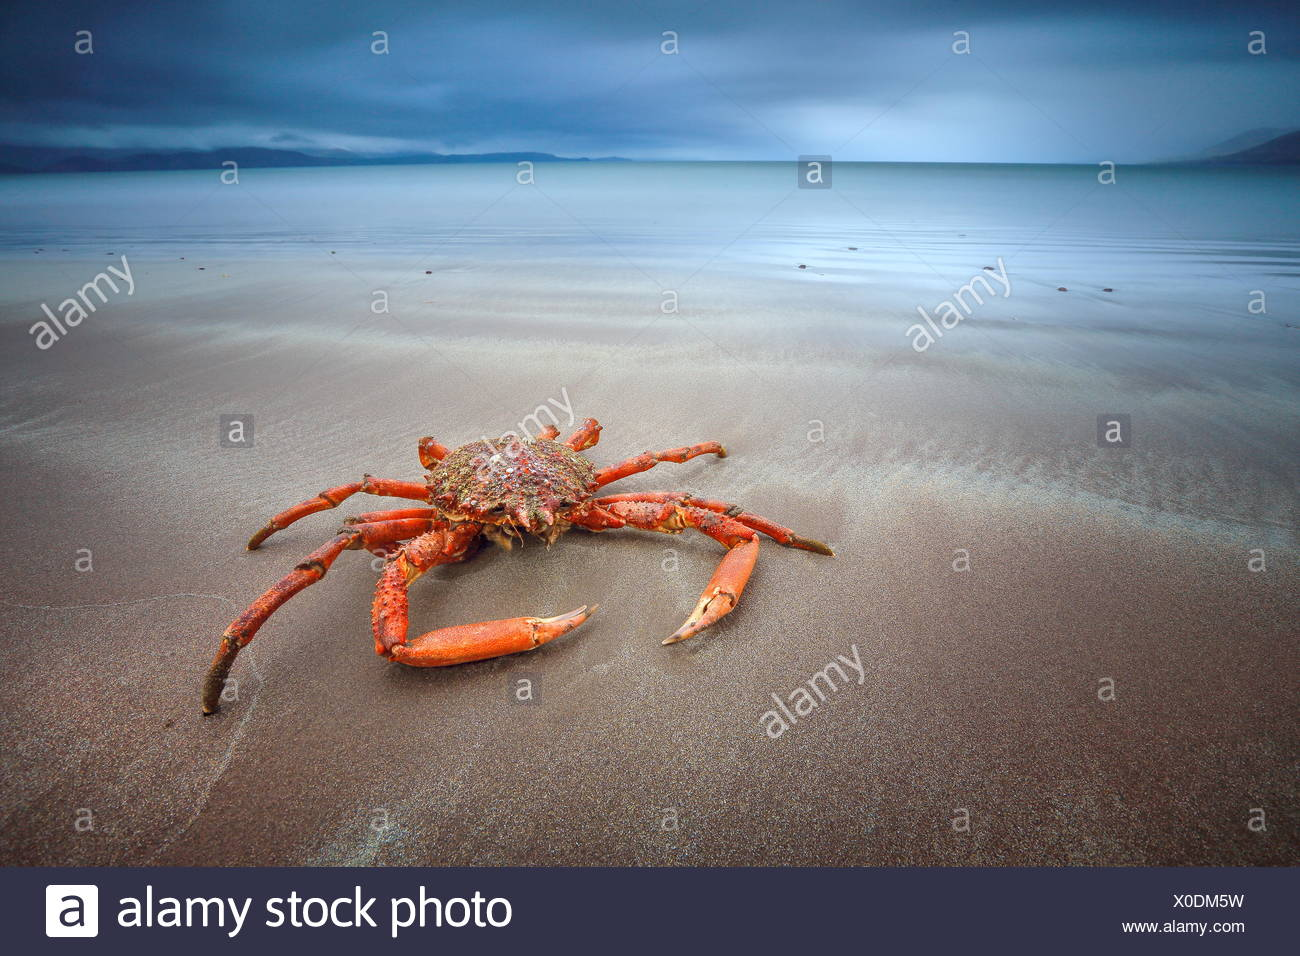 Ireland, Kerry, Rossbeigh beach, Crab - Stock Image